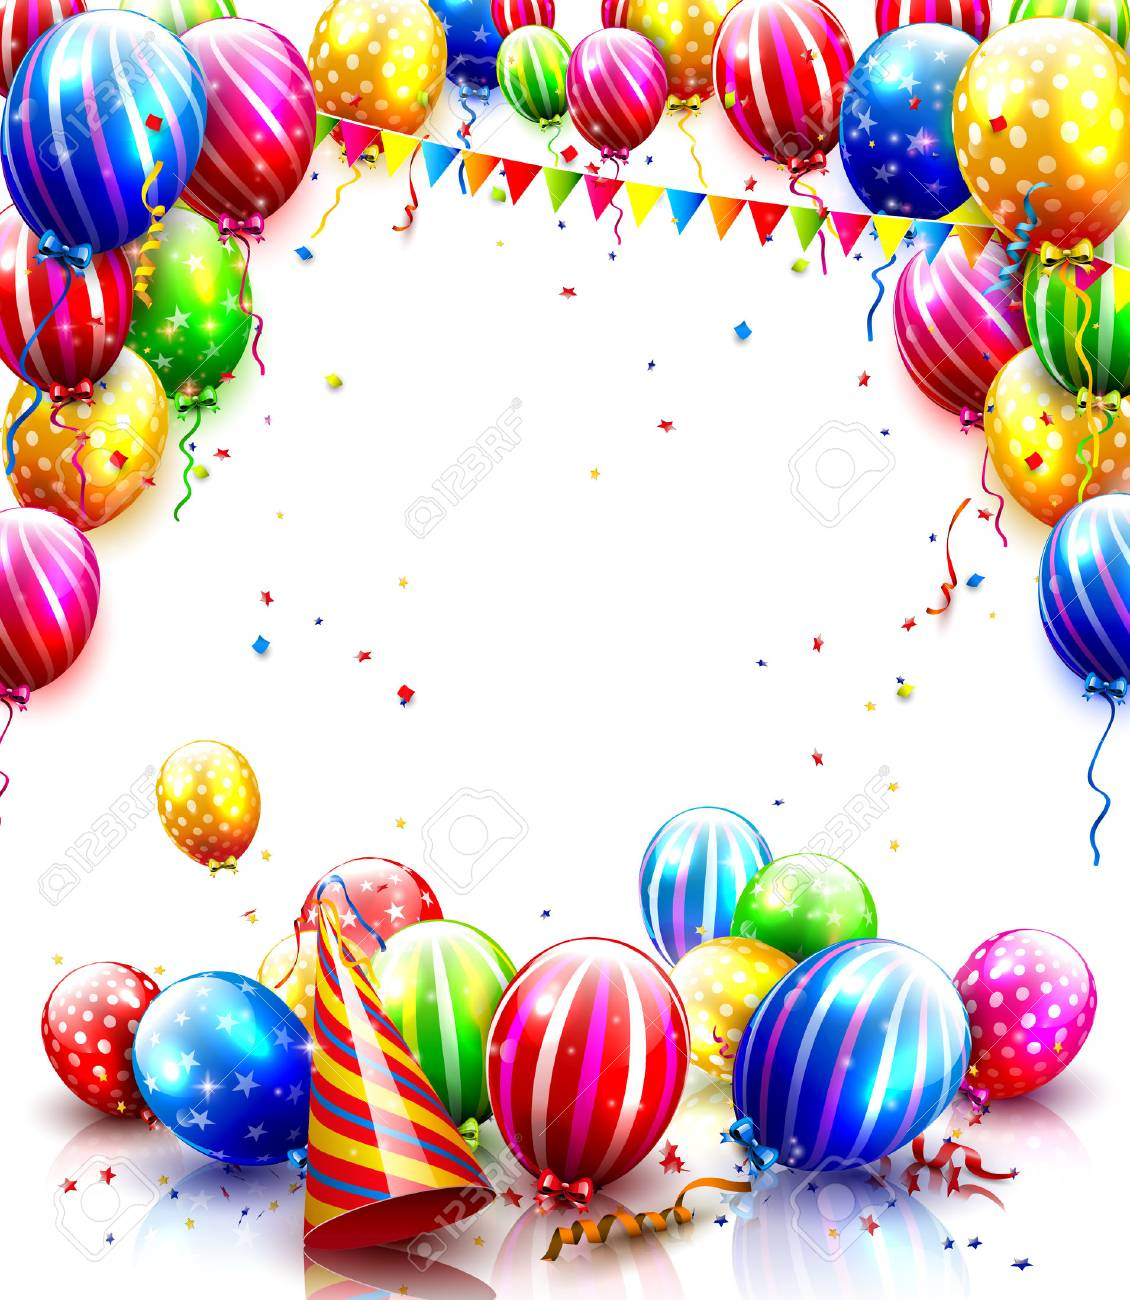 Colorful balloons and confetti isolated on white background., Party..